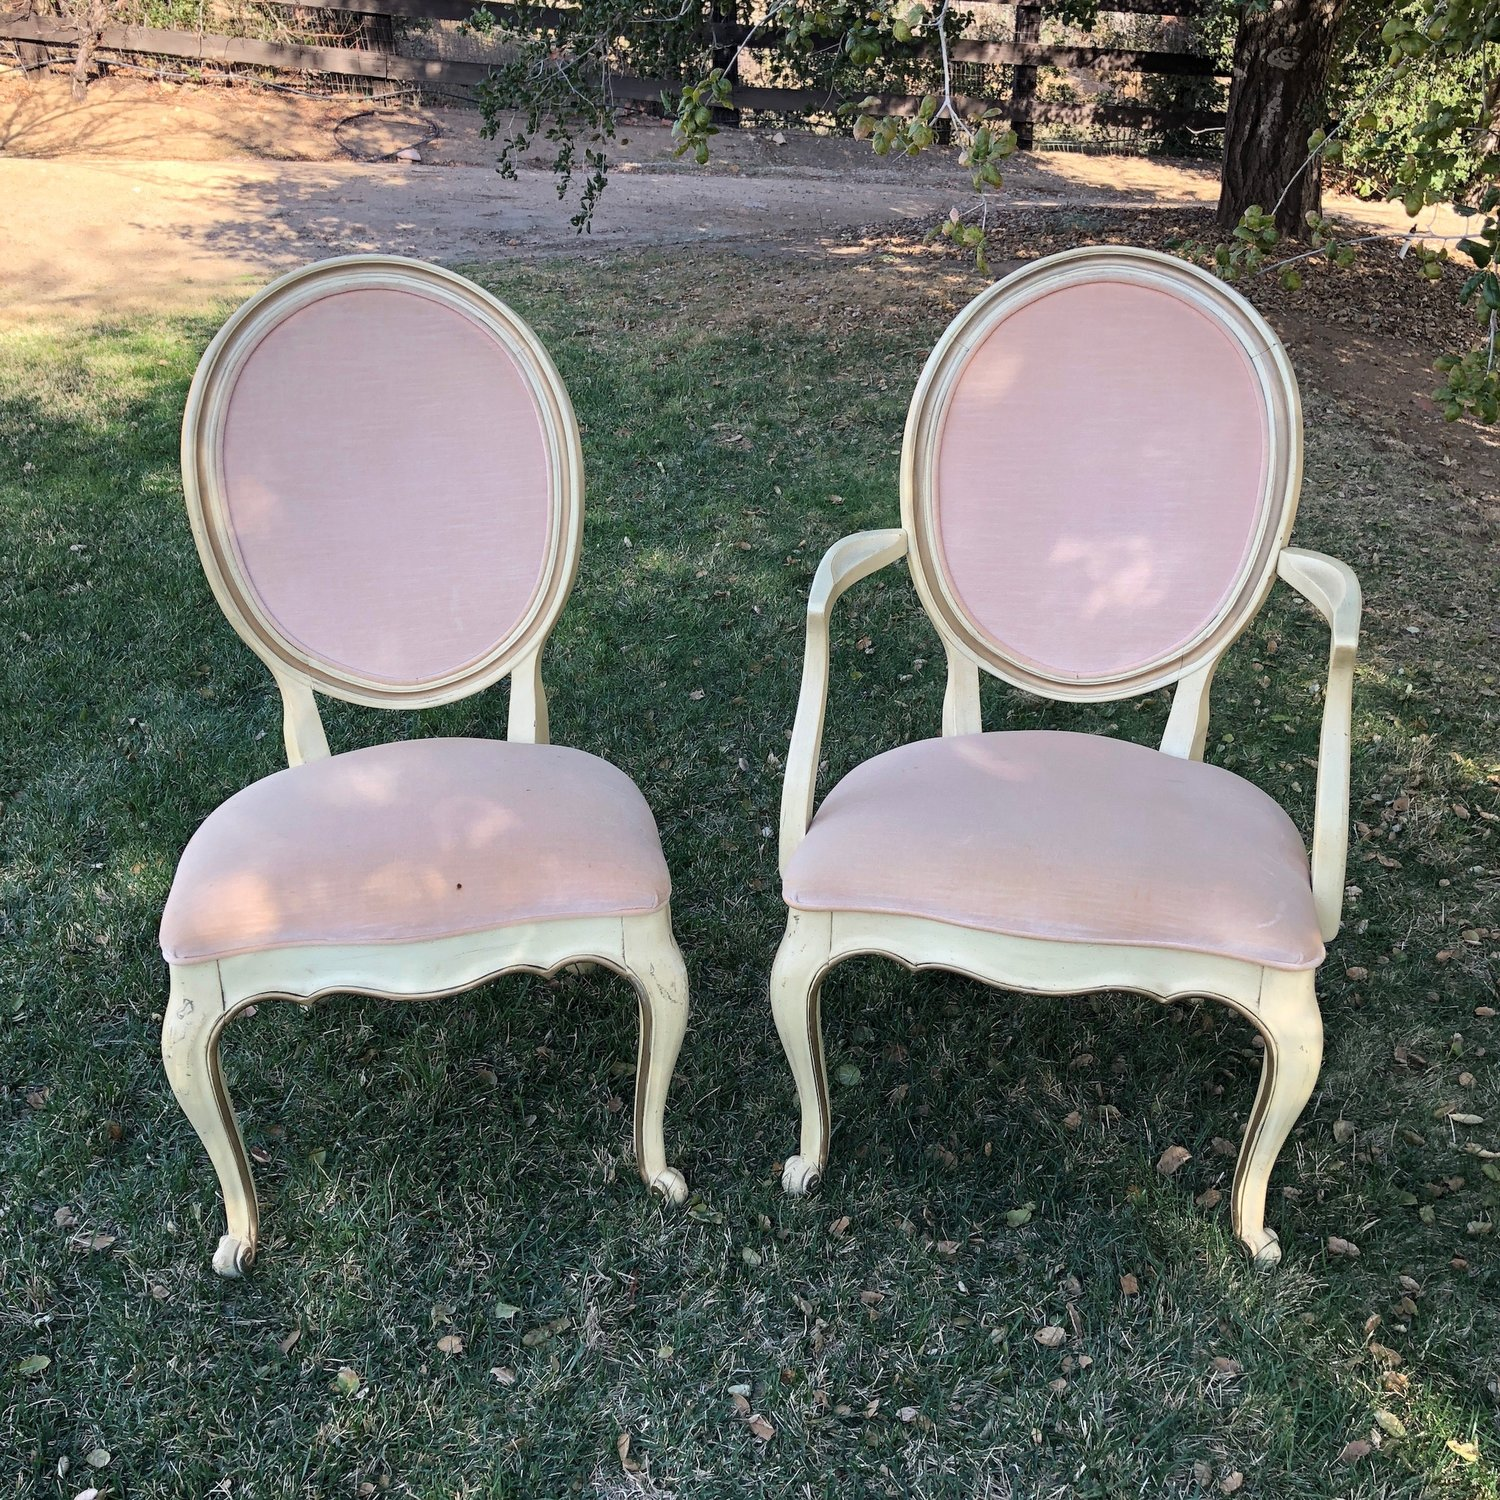 "Romeo and Juliet   These simply must come as a pair... Blush, oval back, sweetheart chairs with cream colored antiqued wood base. One with arms, one without. 40"" high x 22.5"" wide x 18.5"" deep."